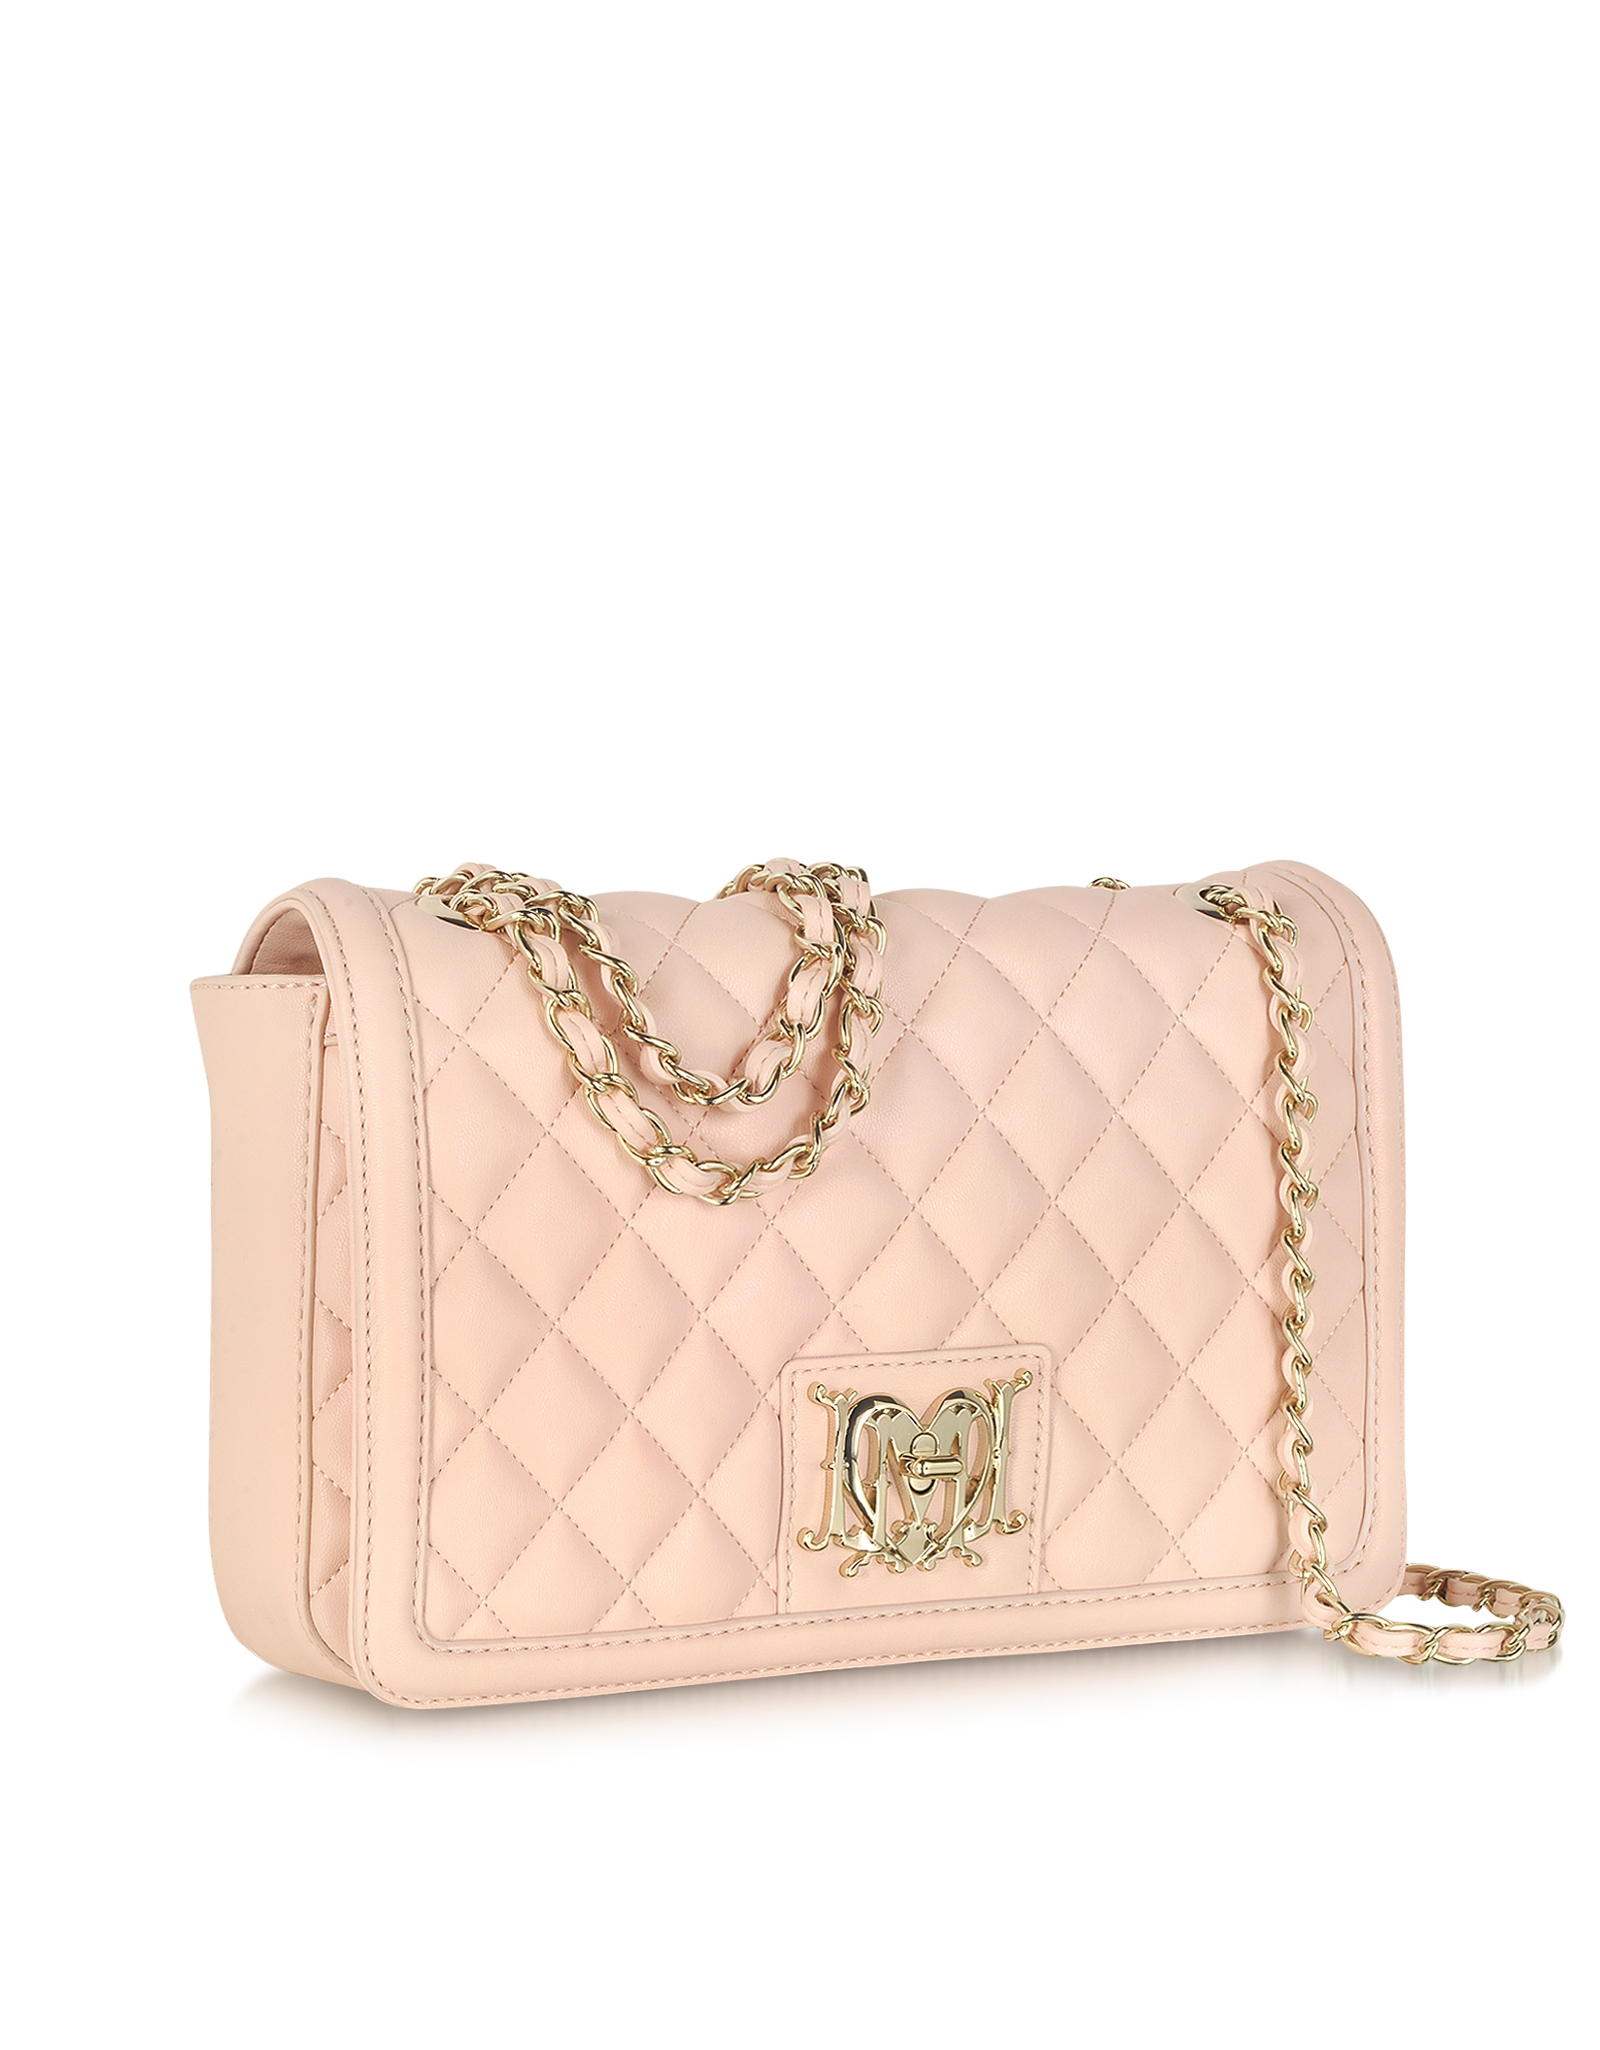 Moschino Powder Pink Quilted Eco Leather Shoulder Bag in Pink | Lyst